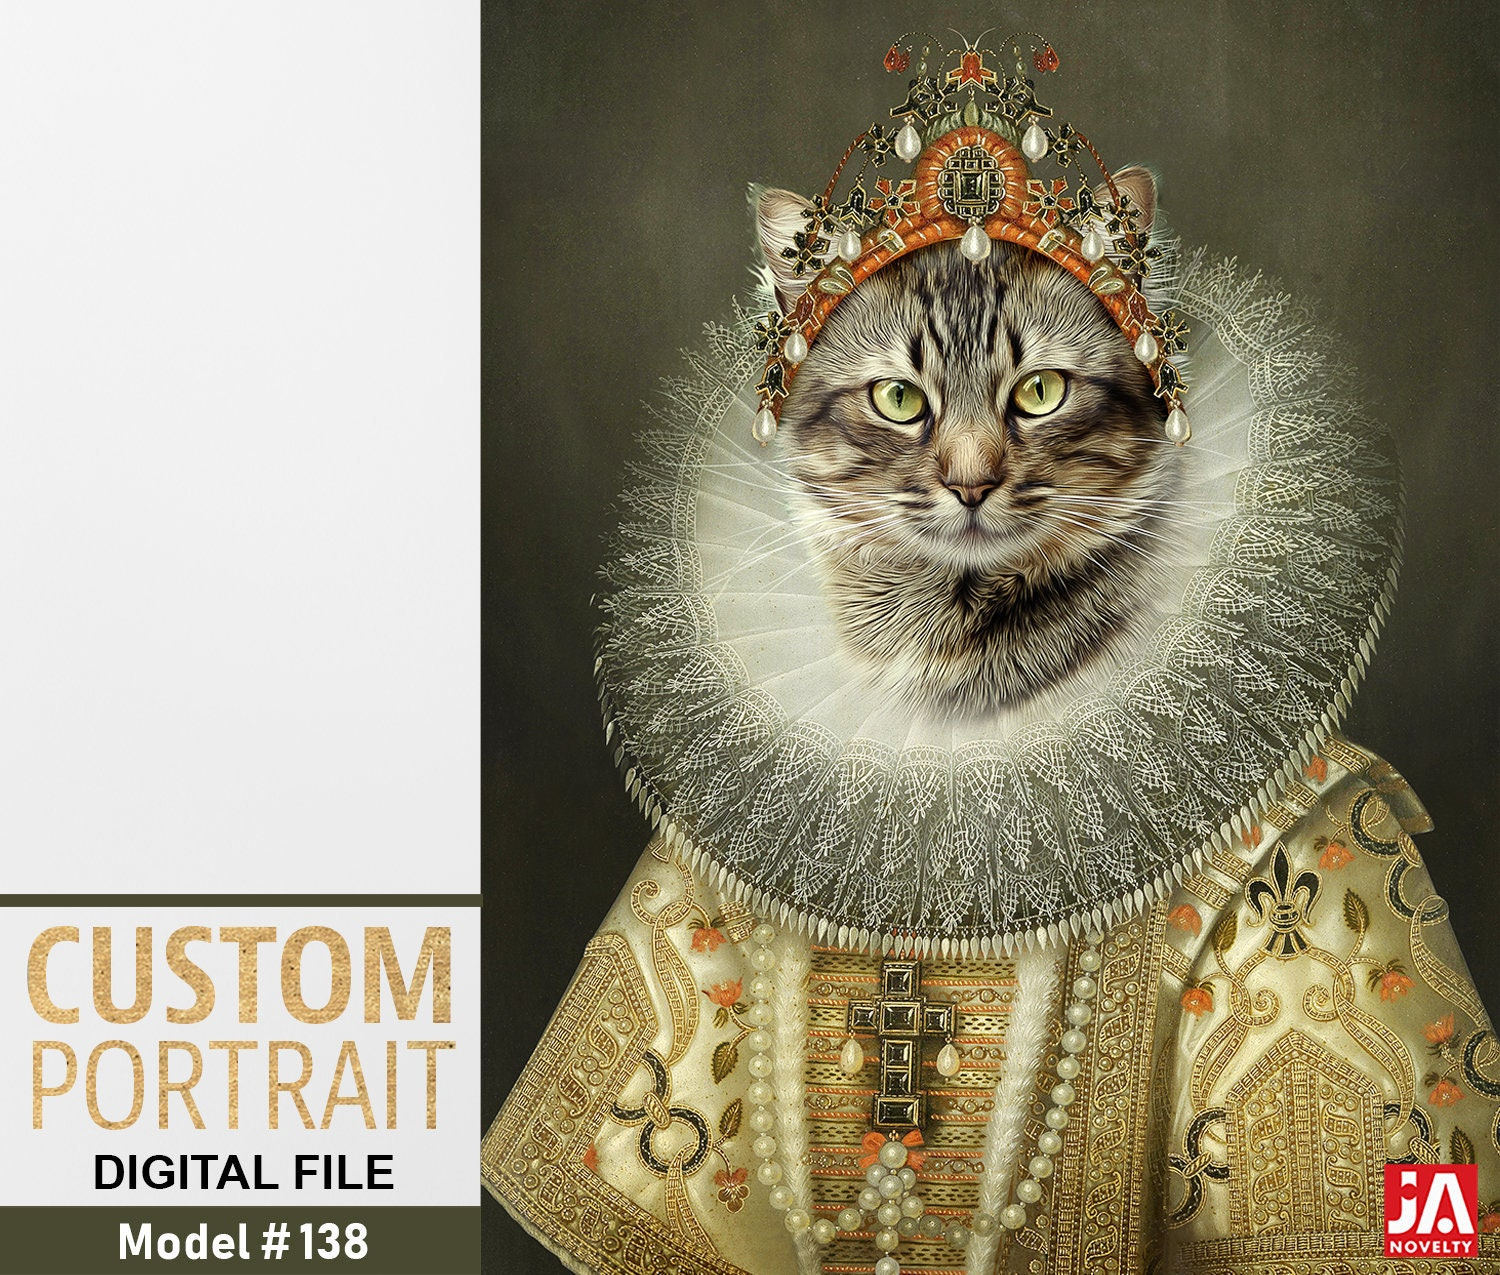 55eaf40c4942 Aristocrat cat, Cat lover, Royal pet portrait, Renaissance pet portraits,  Regal cat, Medieval pet portrait, Custom pet portrait by janovelty